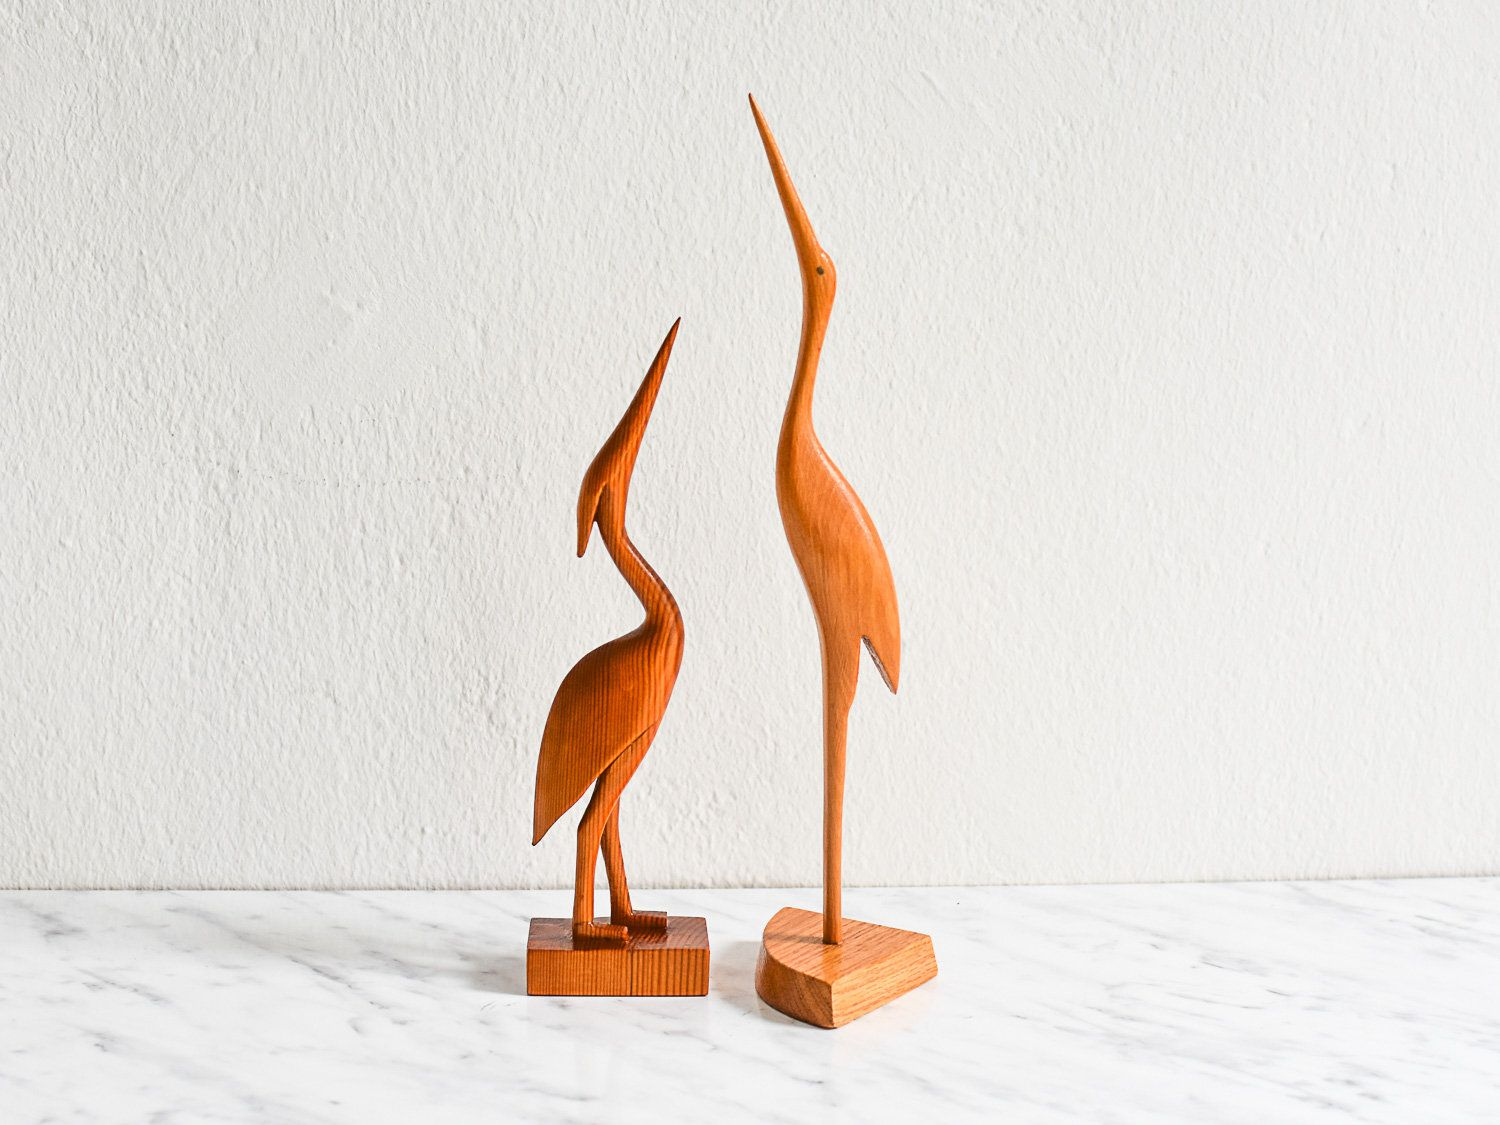 Holz Figuren Crane Figurines Bird Figurines Vintage Cranes Wooden Cranes